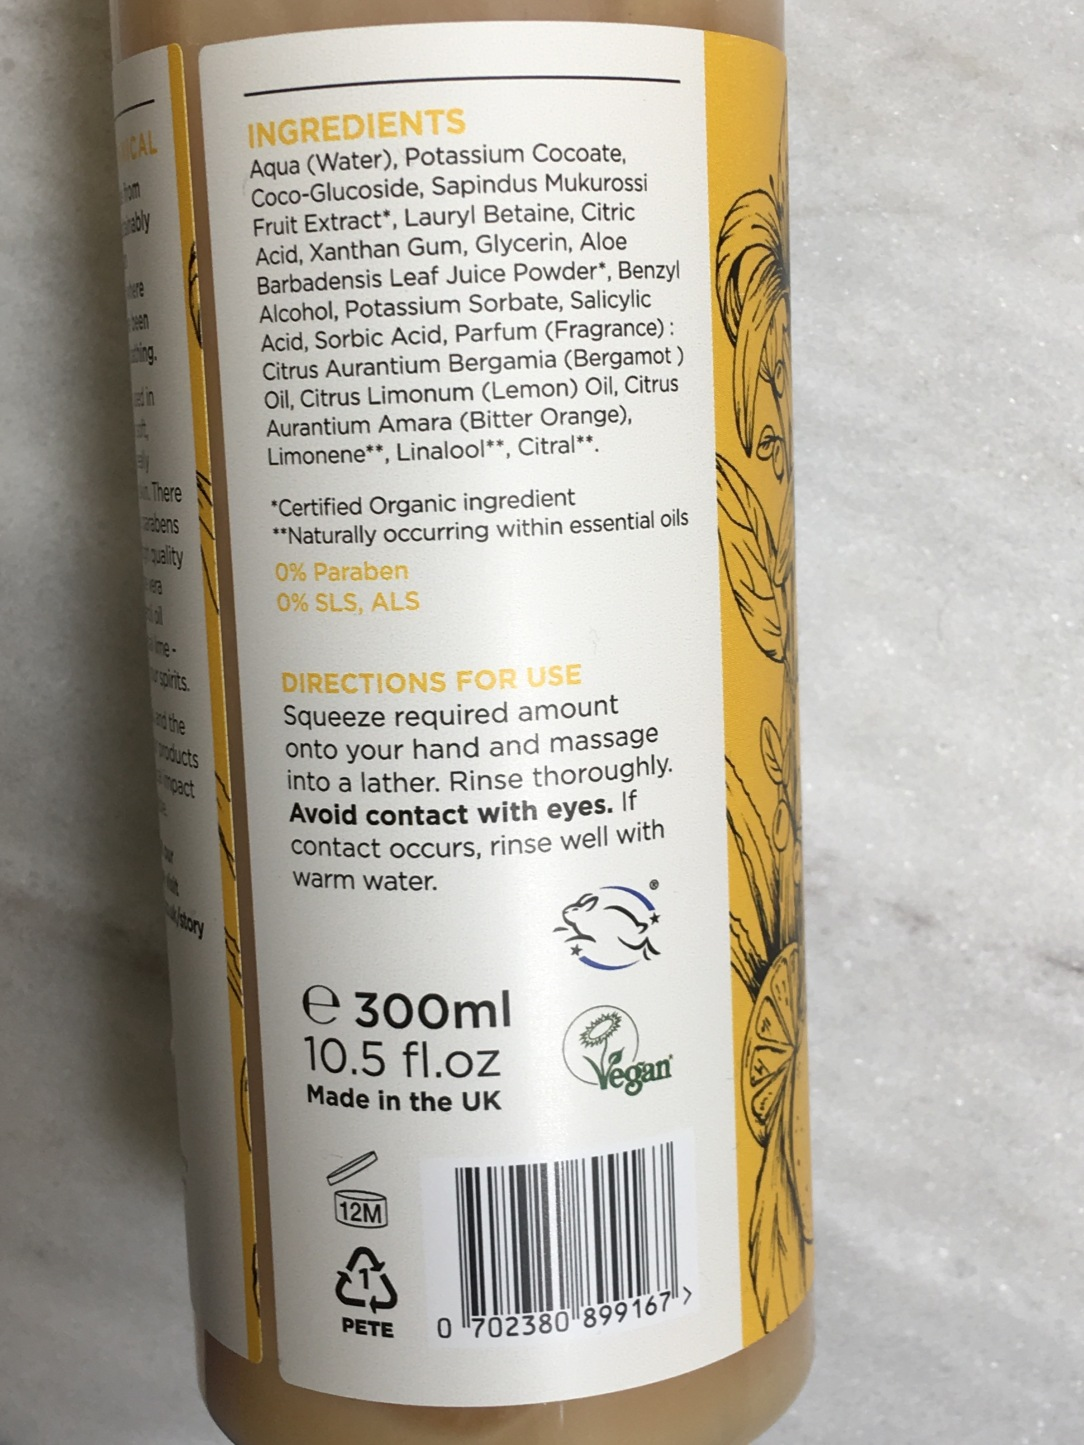 Greenfrog Botanic Neroli & Lime body wash